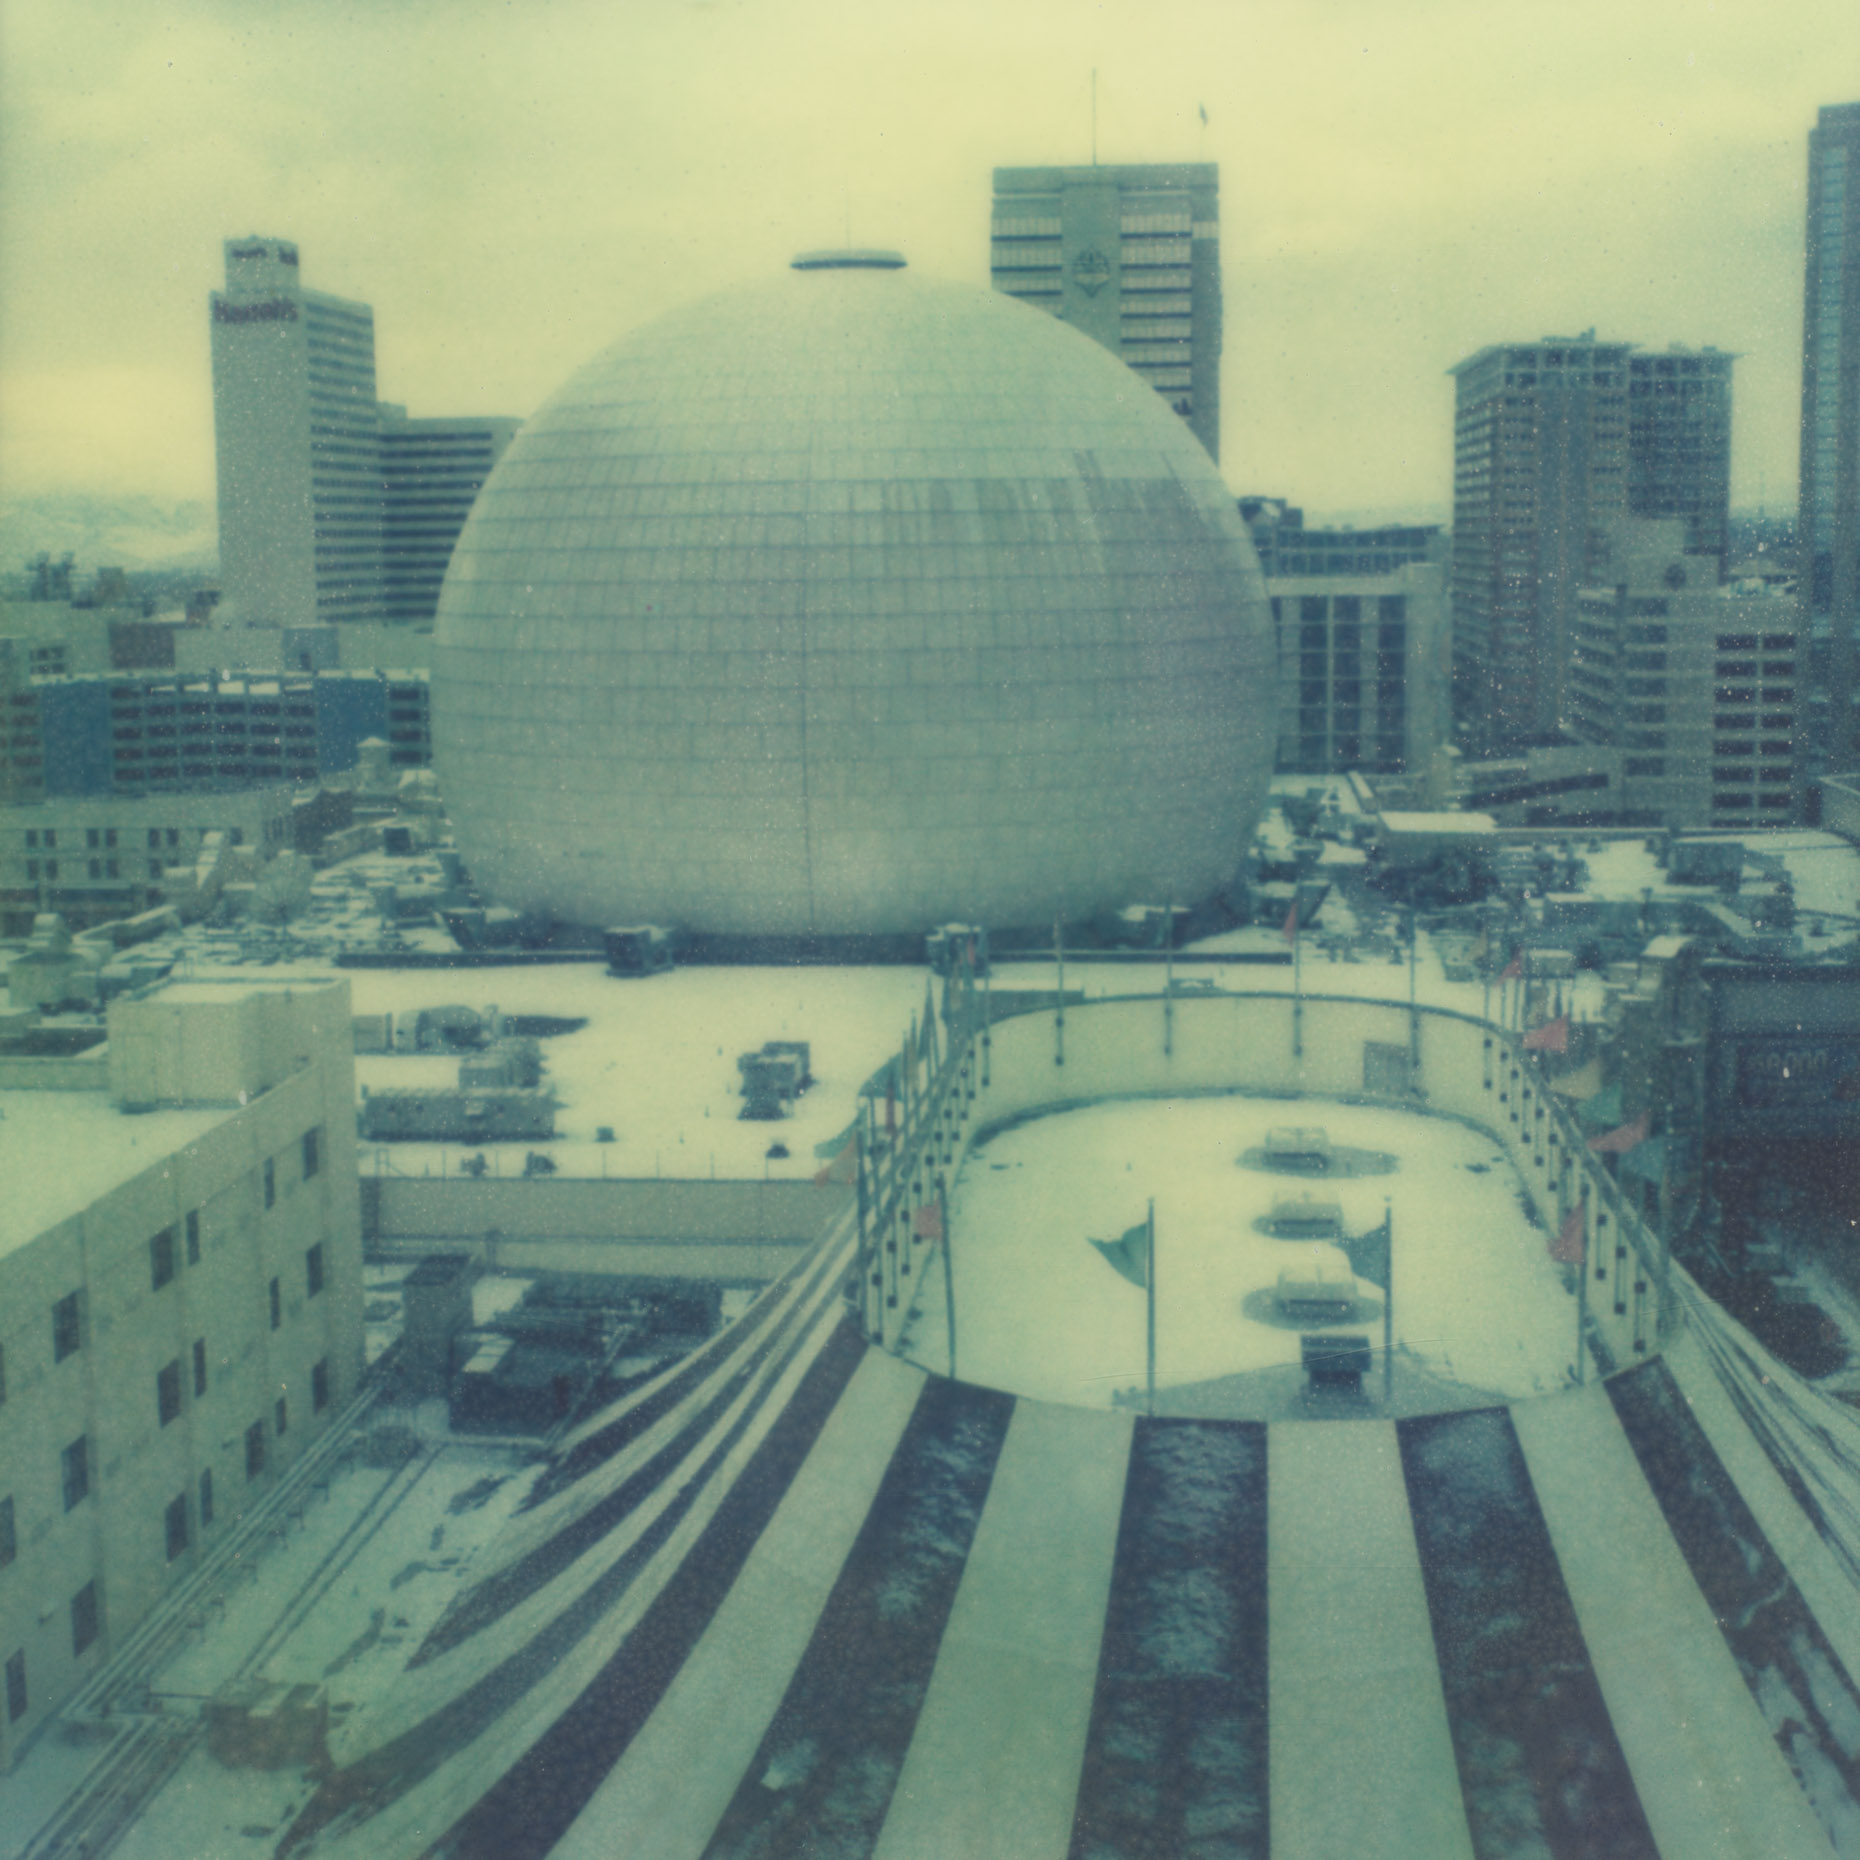 20121230-002-PX70CS-CO